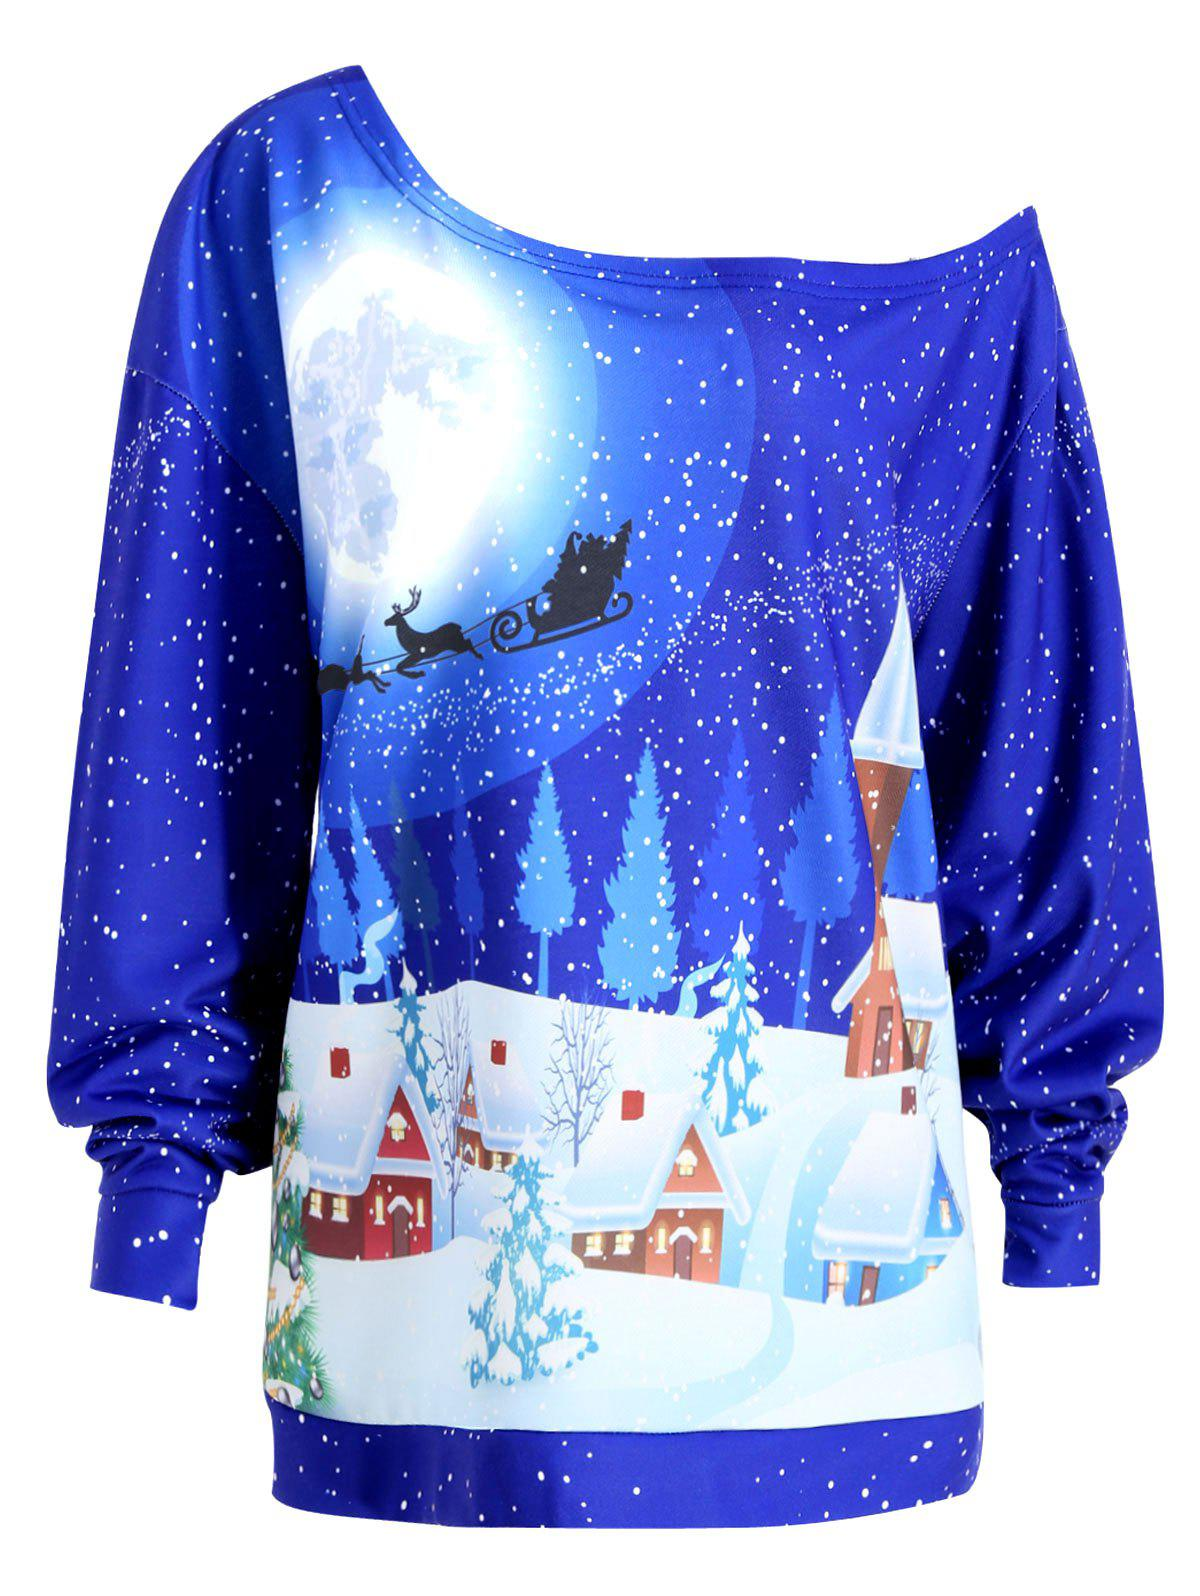 Christmas Evening Printed Plus Size Skew Neck SweatshirtWOMEN<br><br>Size: XL; Color: ROYAL; Material: Cotton Blend,Polyester; Shirt Length: Regular; Sleeve Length: Full; Style: Fashion; Pattern Style: Print; Season: Fall,Winter; Weight: 0.4100kg; Package Contents: 1 x Sweatshirt;